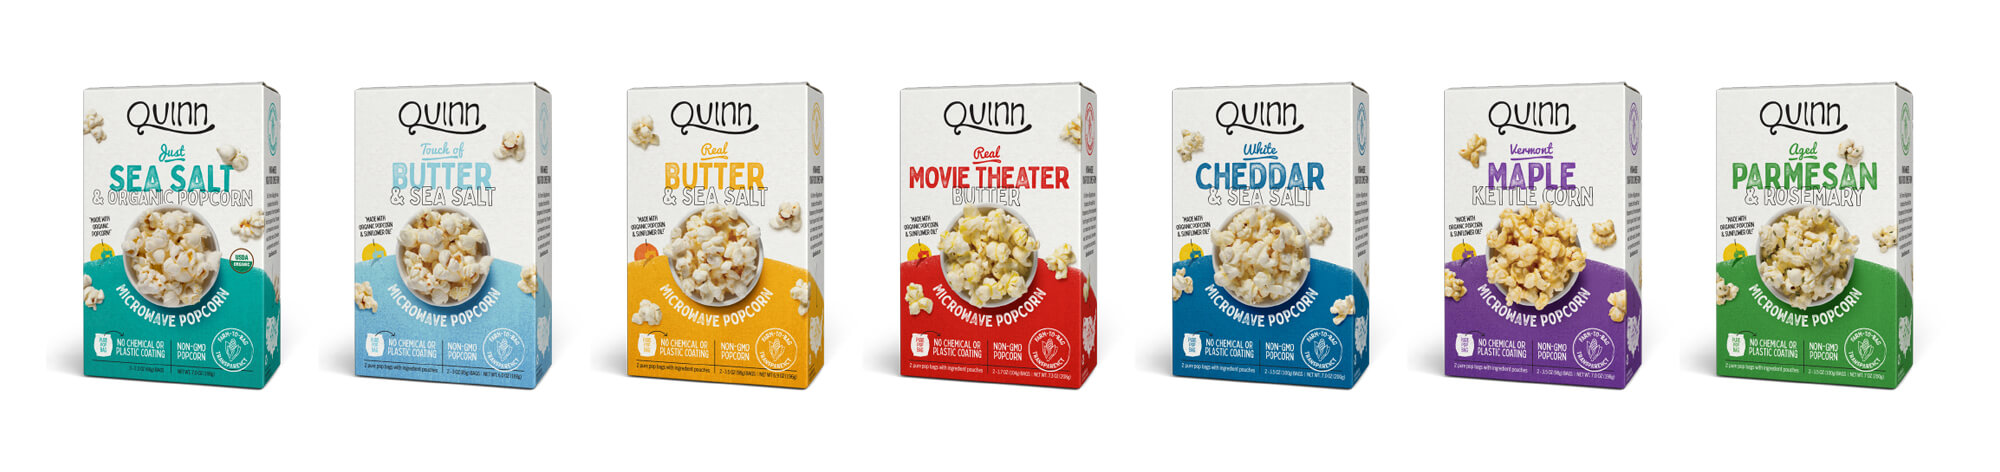 Quinn Popcorn Packaging